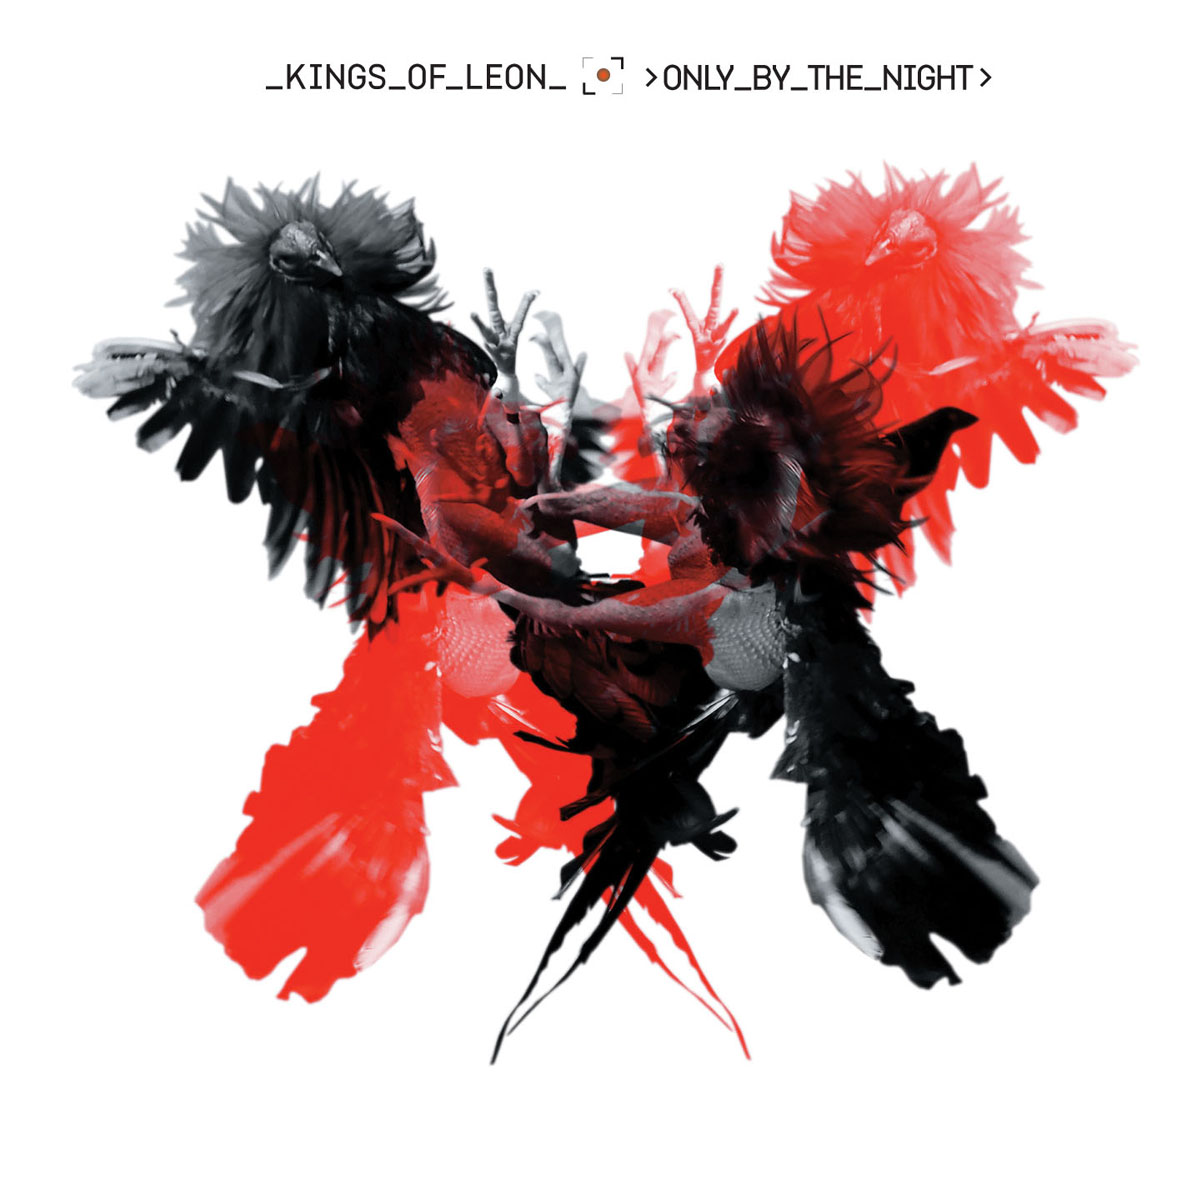 Kings of leon rca records.